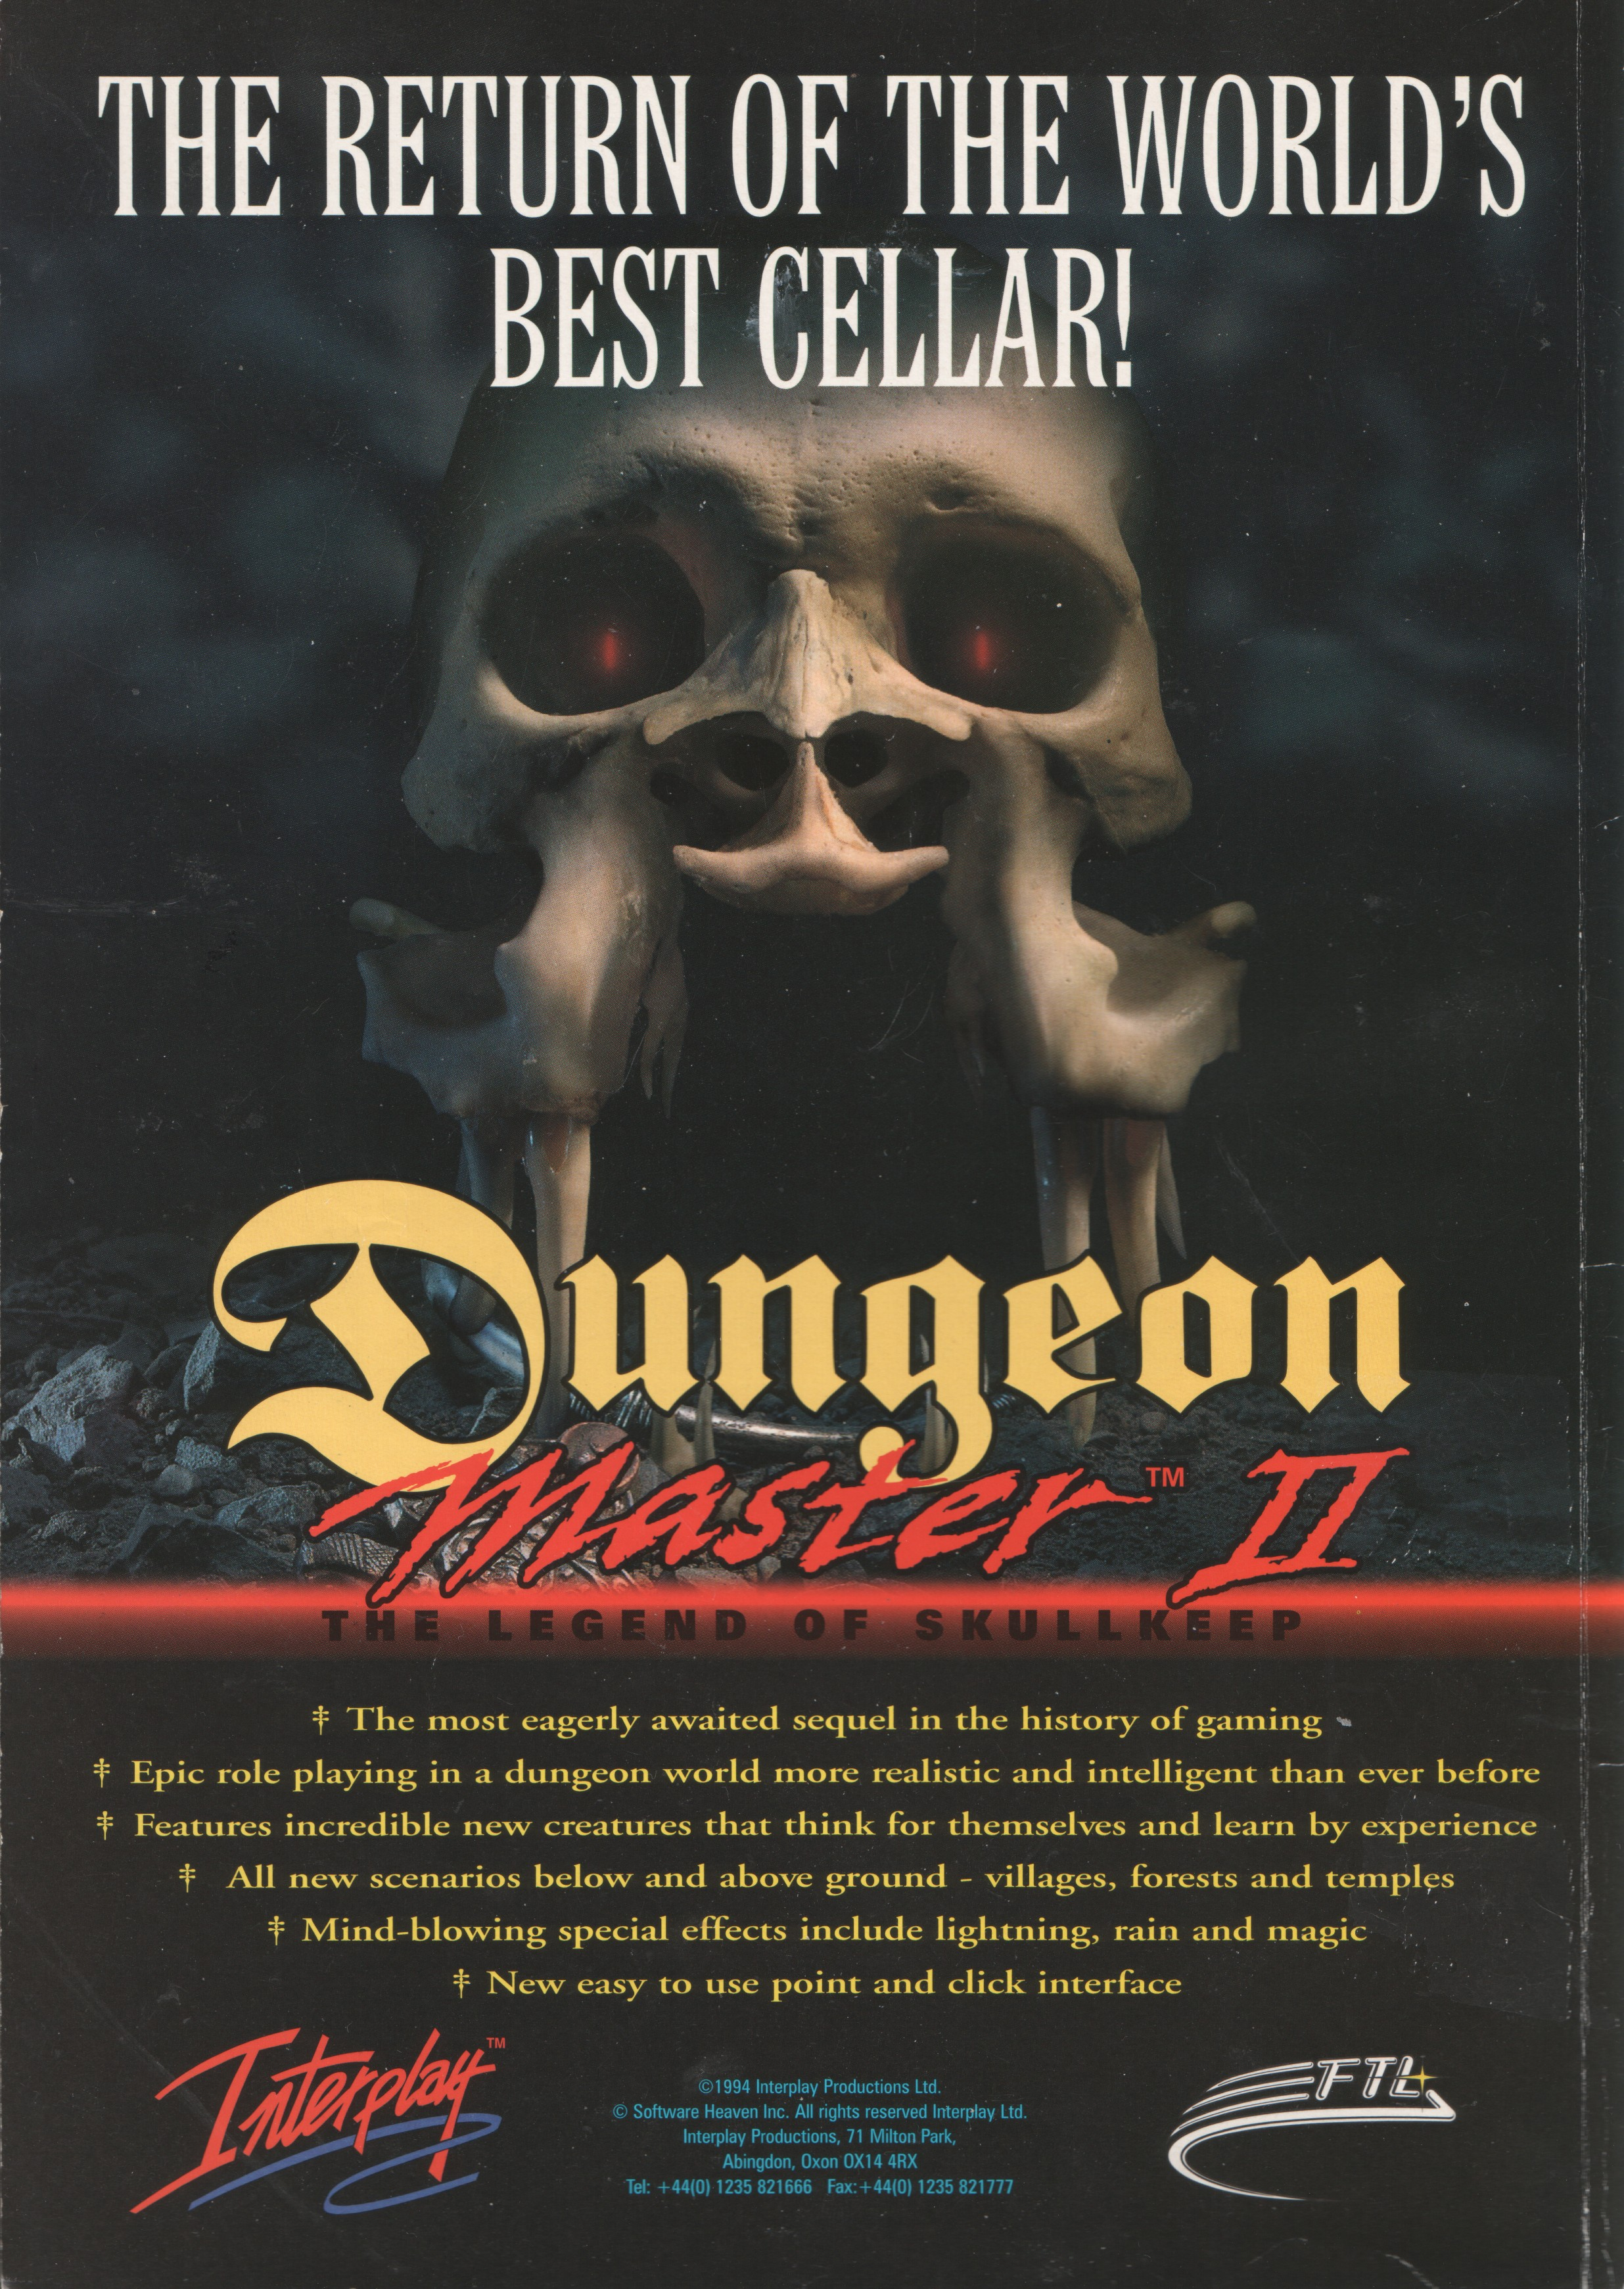 Dungeon Master II for Amiga Advertisement published in British magazine 'Amiga Power', Issue #56 December 1995, Page 76